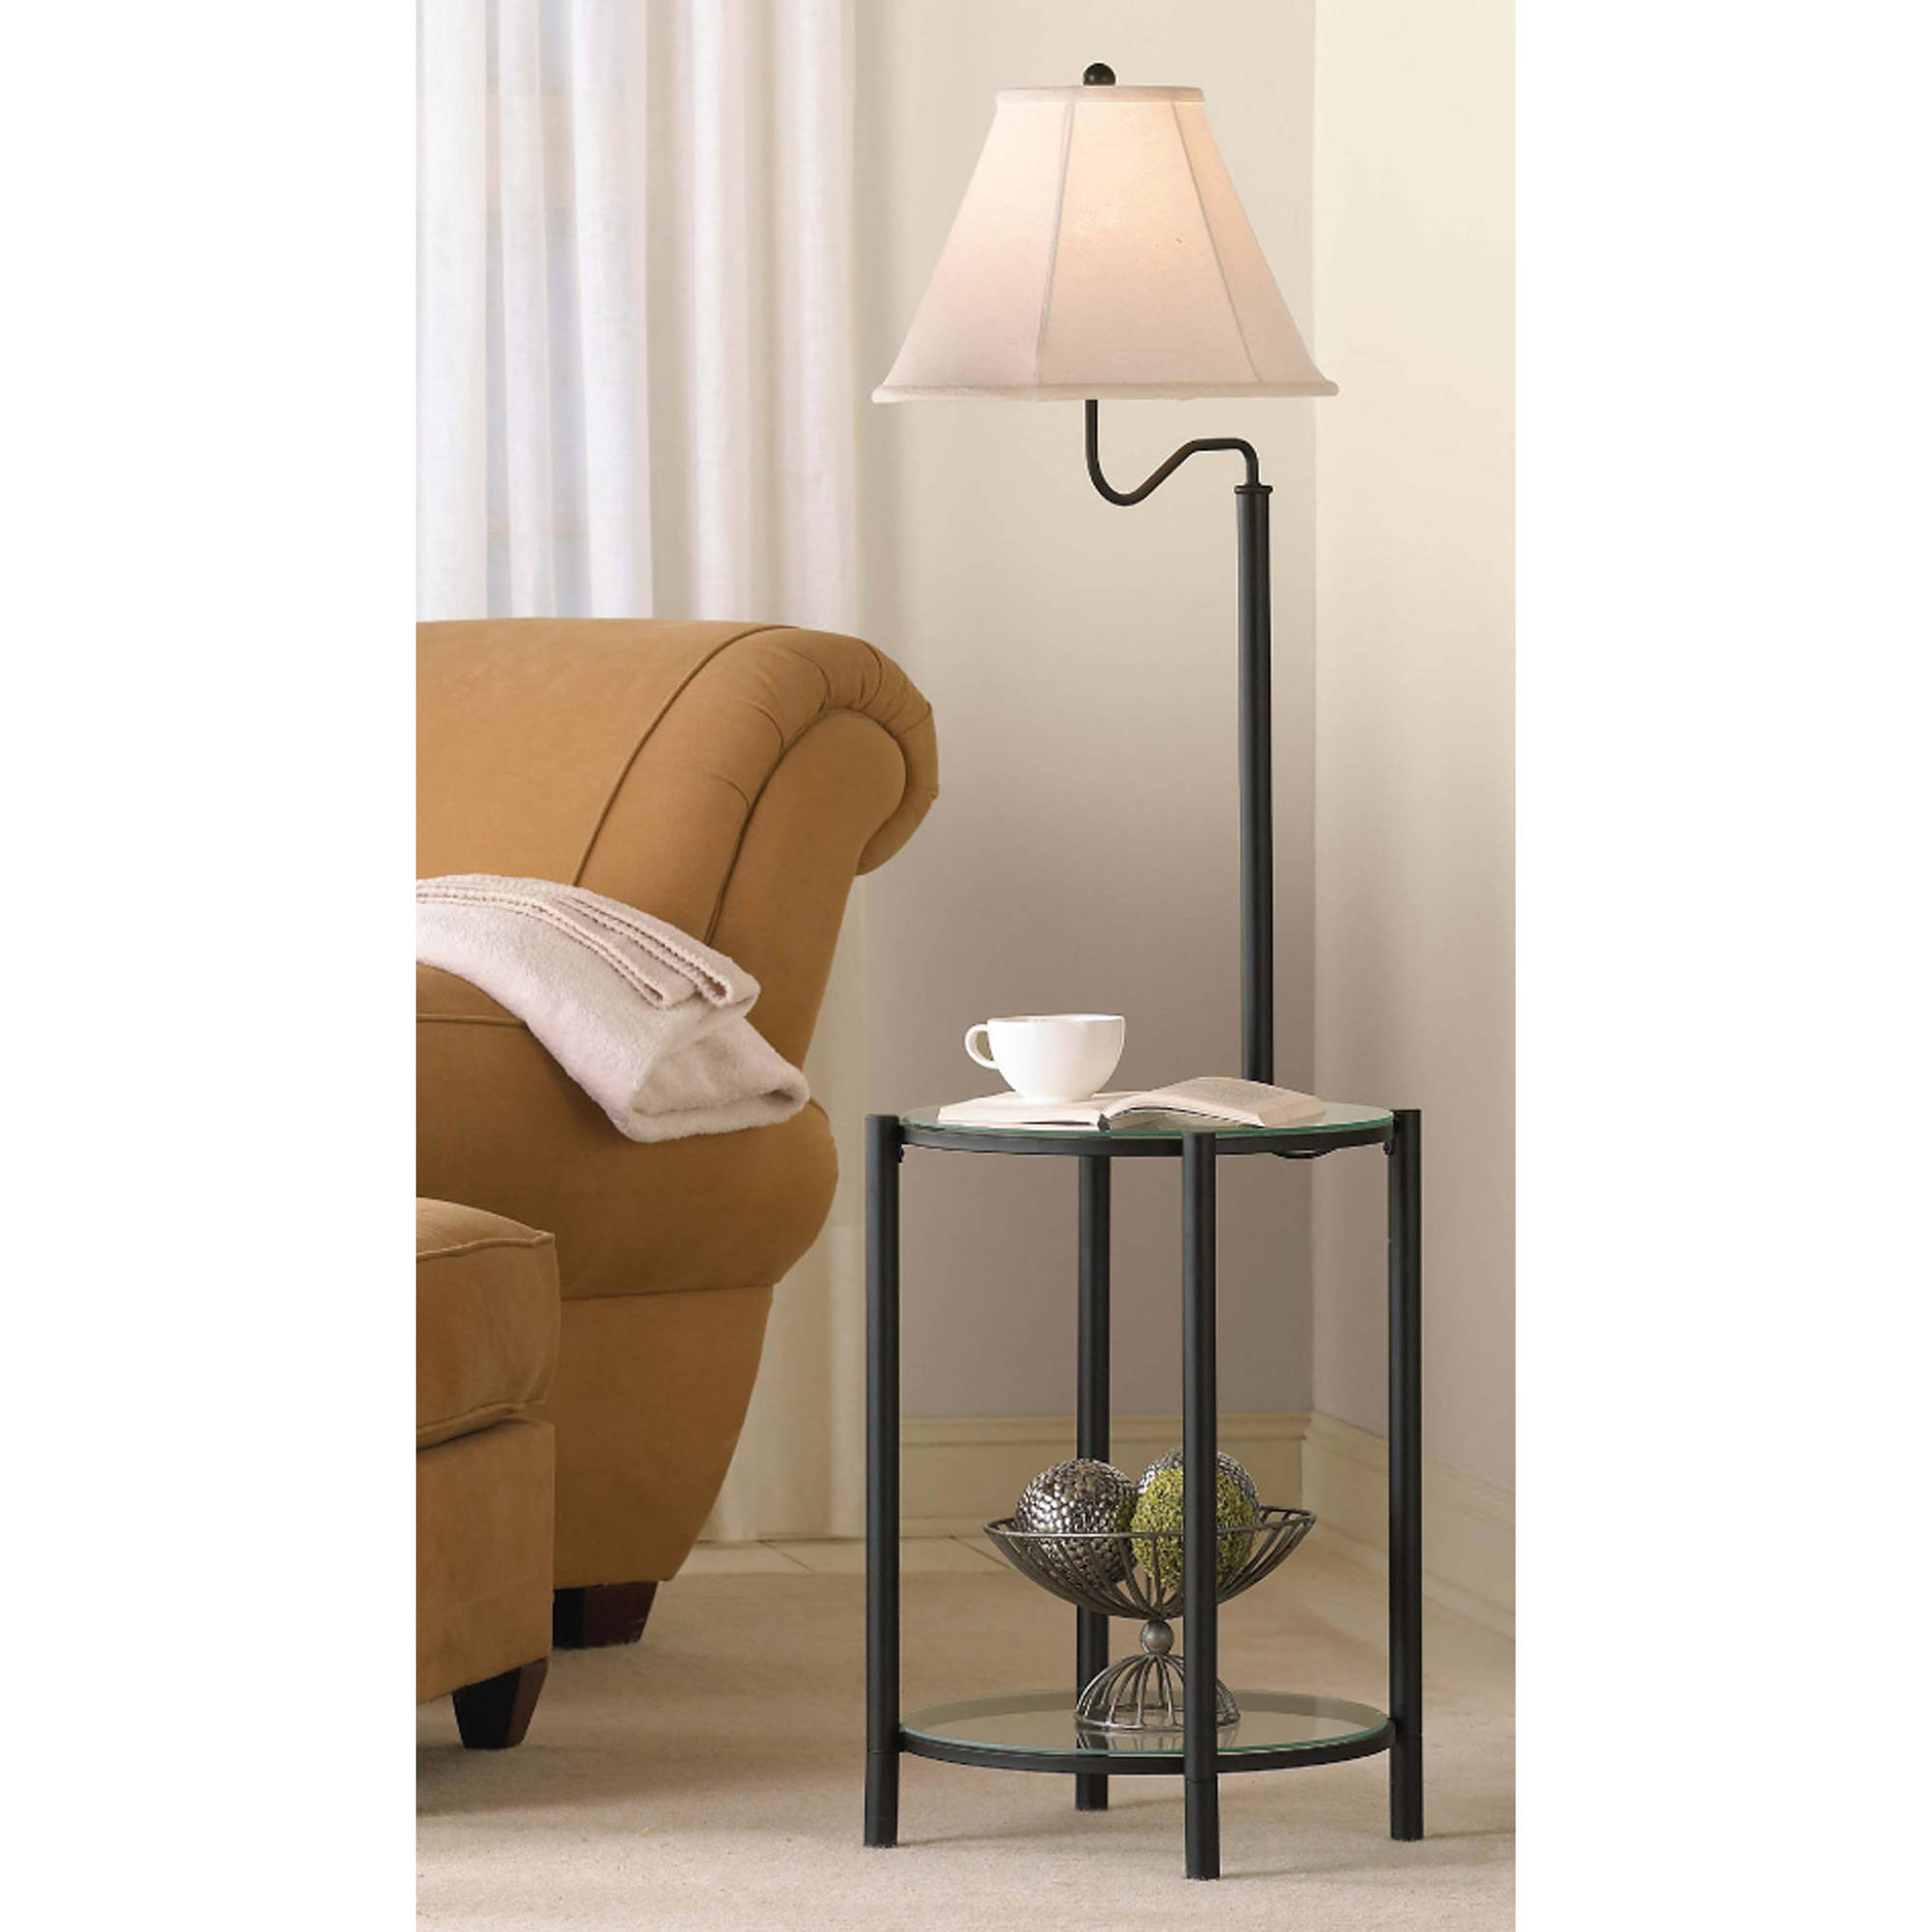 Mainstays glass end table floor lamp matte black cfl bulb included mainstays glass end table floor lamp matte black cfl bulb included walmart mozeypictures Image collections